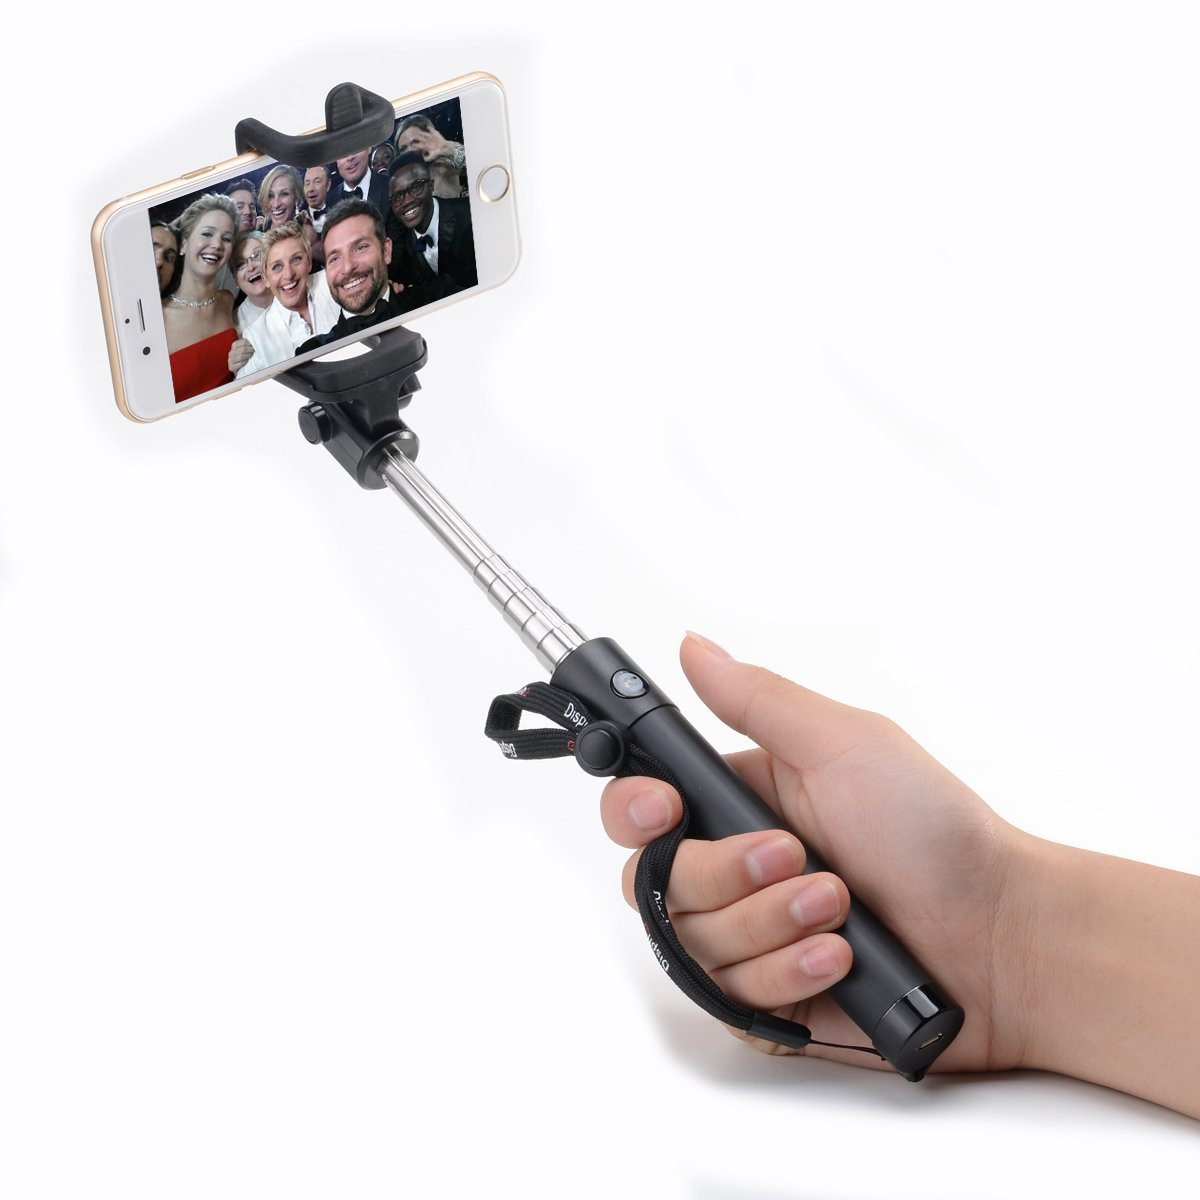 Selfie Stick - Disph® Extendable Pole Bluetooth Self Shooting Monopod - Best Selfie Sticks on Amazon - Universal for Taking Self Portrait Selfy Shots on Iphone 6, Samsung Galaxy ,Android and All Other Bluetooth Enabled Devices kitred5l350unv35668 value kit rediform sales book red5l350 and universal standard self stick notes unv35668